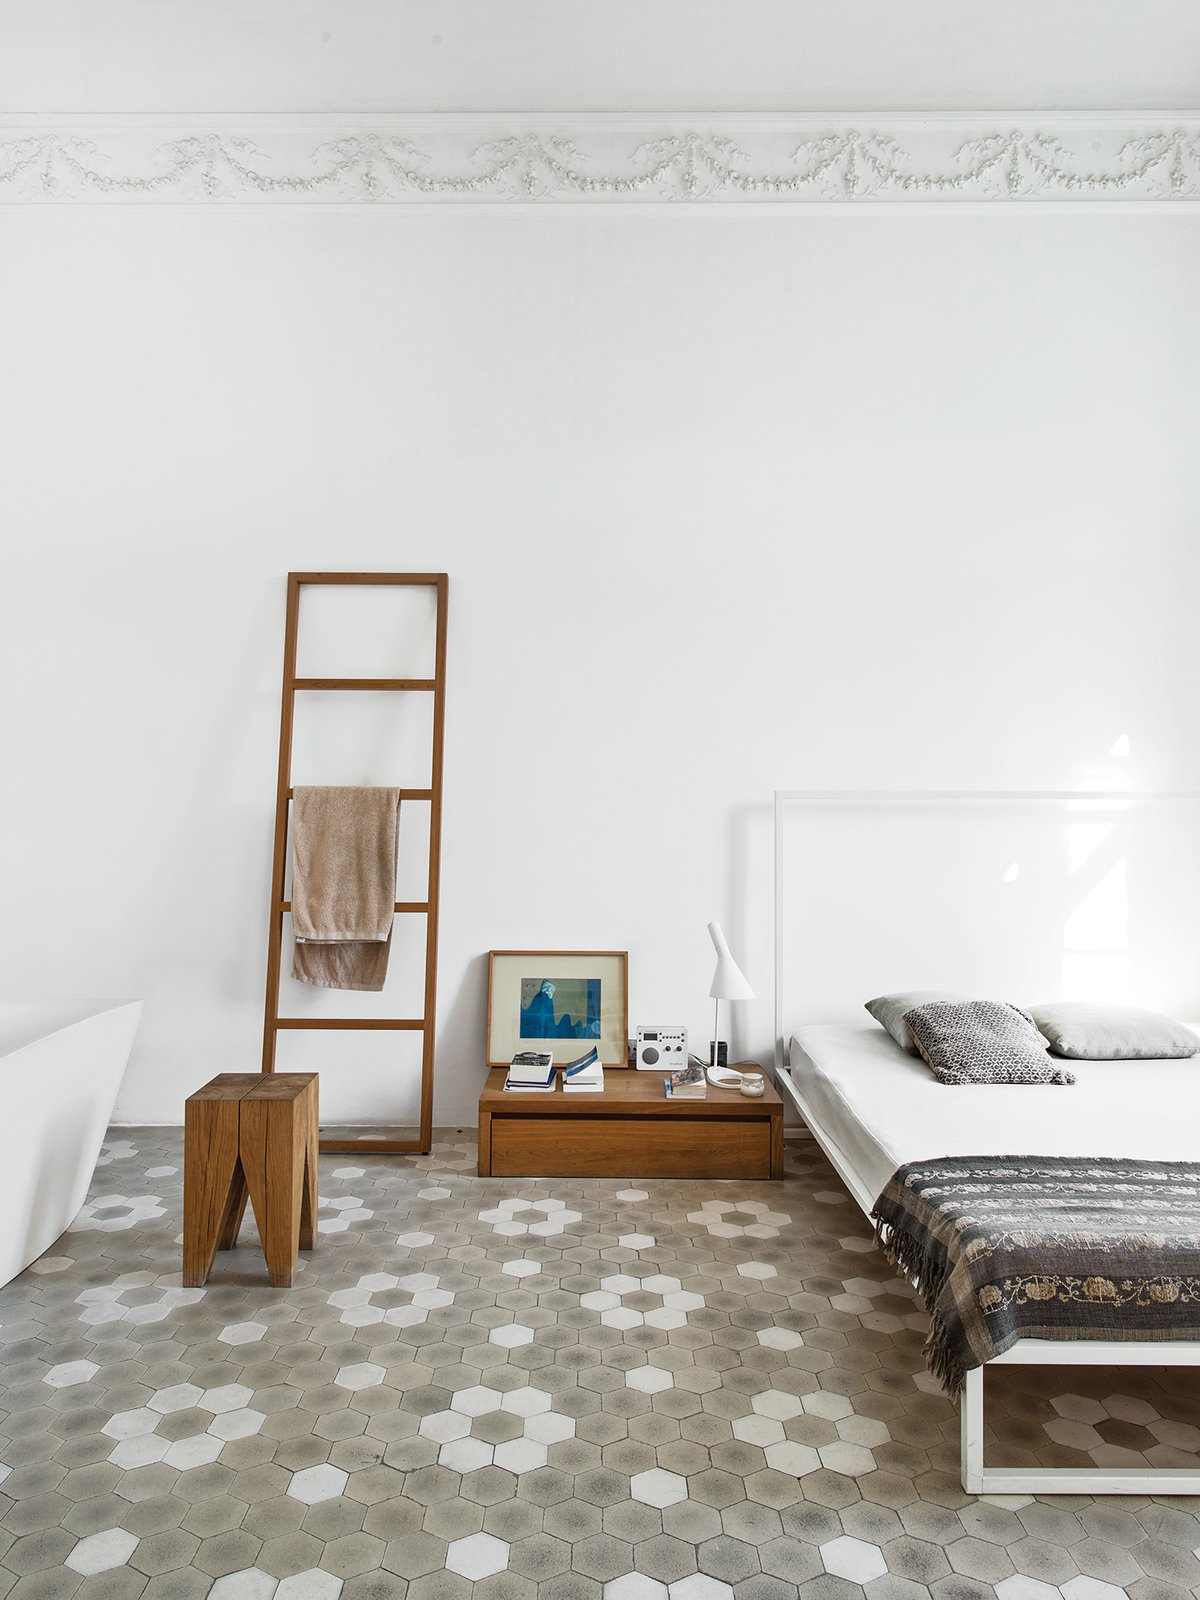 Bedroom, Bed, Night Stands, and Lamps The master bedroom includes a Mini bed by Emaf Progetti for Zanotta, a tub by Sanico, and a towel rack and side table by Philipp Mainzer.  Bedroom from Love at First Sight